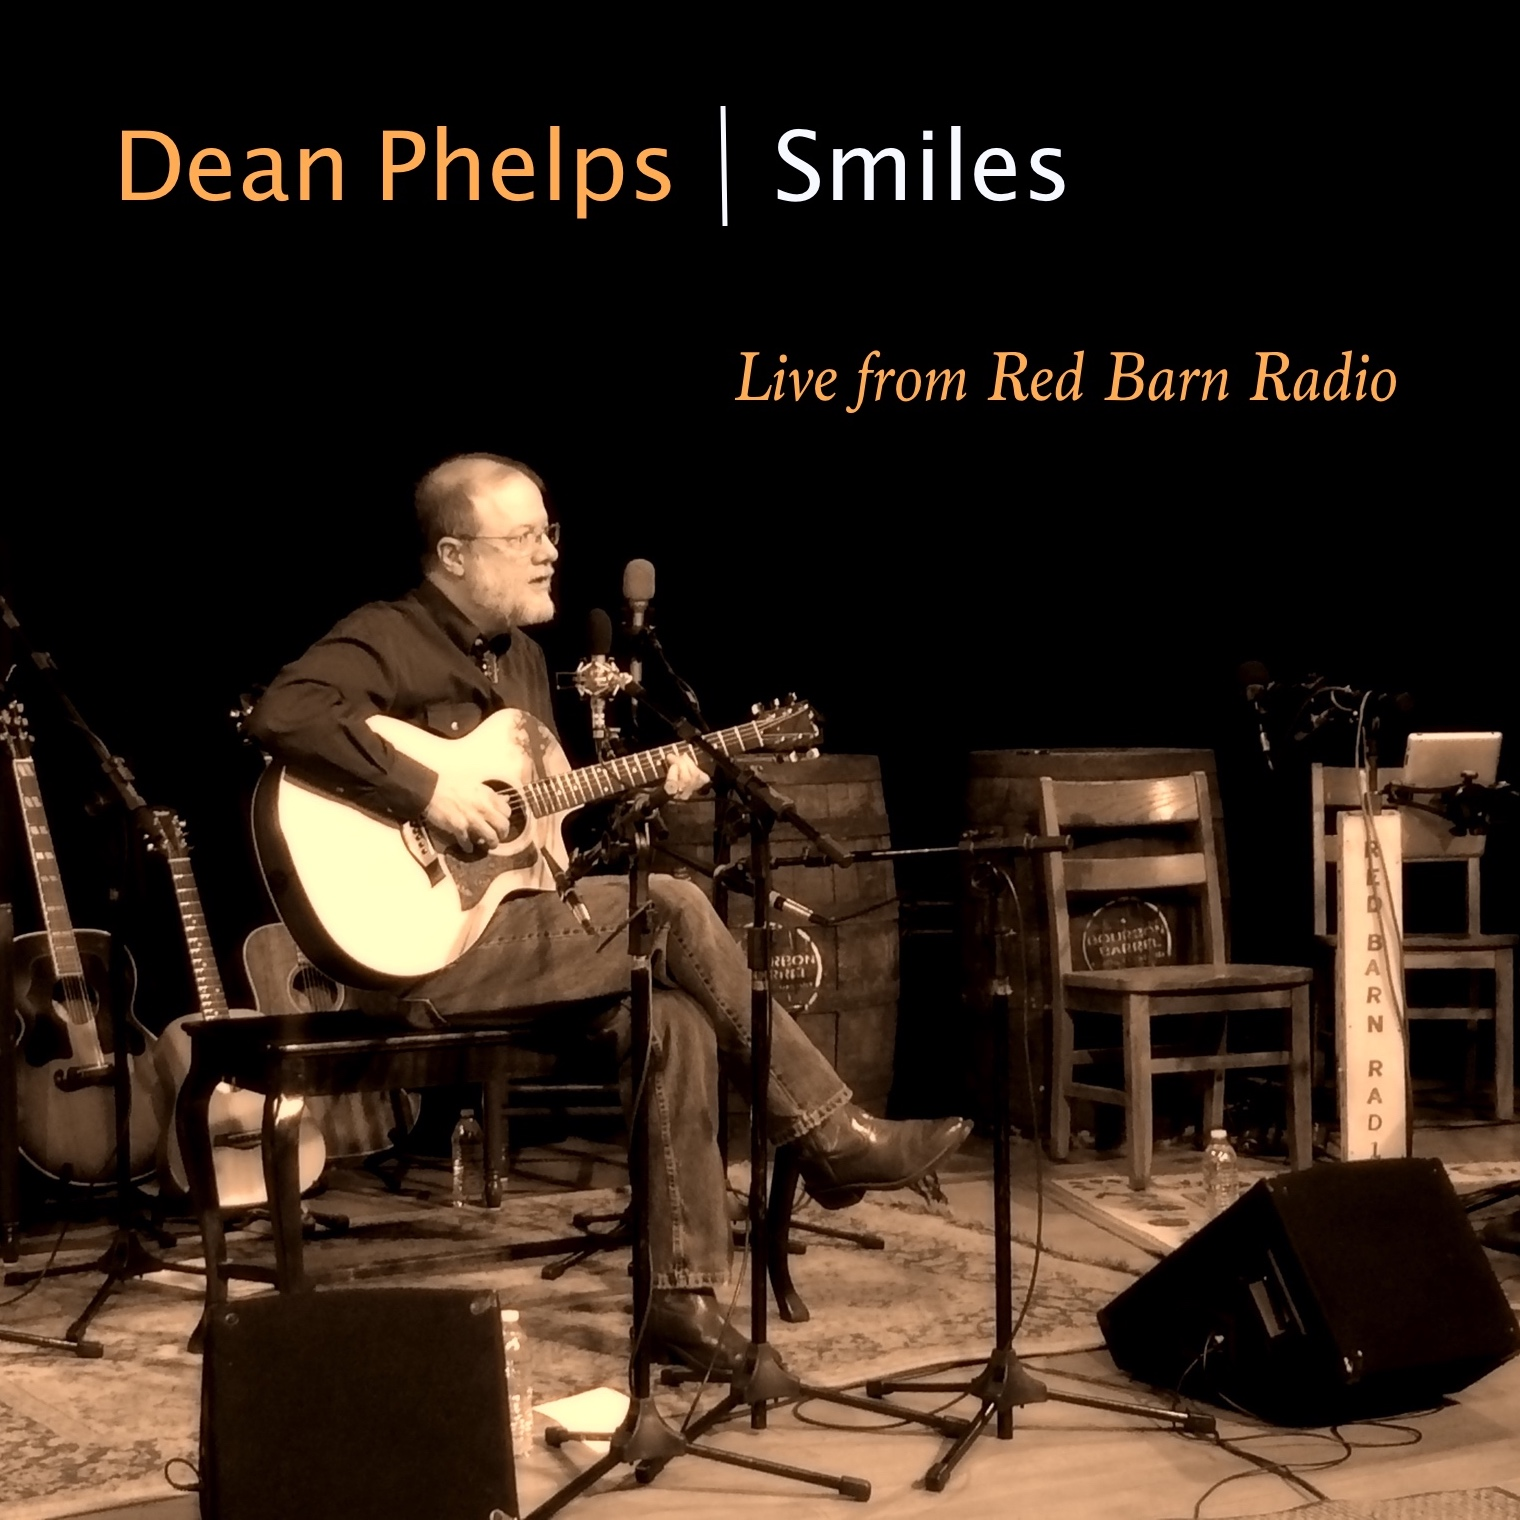 Smiles - Live from Red Barn Radio (CD)